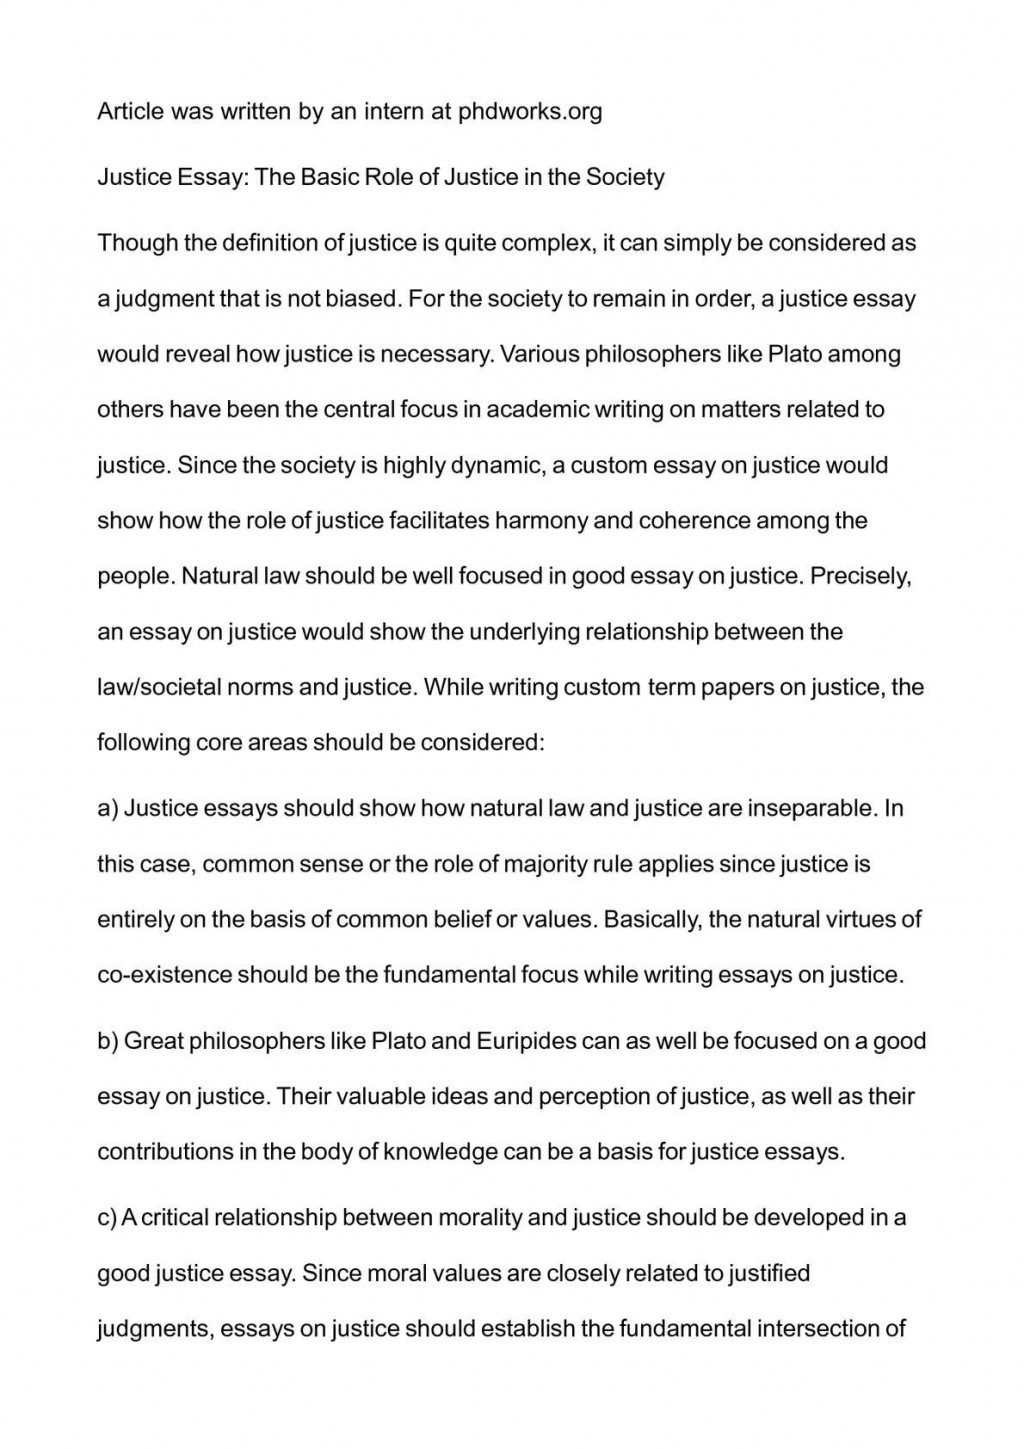 001 Essay Example Justice Fascinating To Kill A Mockingbird And Injustice Criminal Scholarship Examples Introduction Large